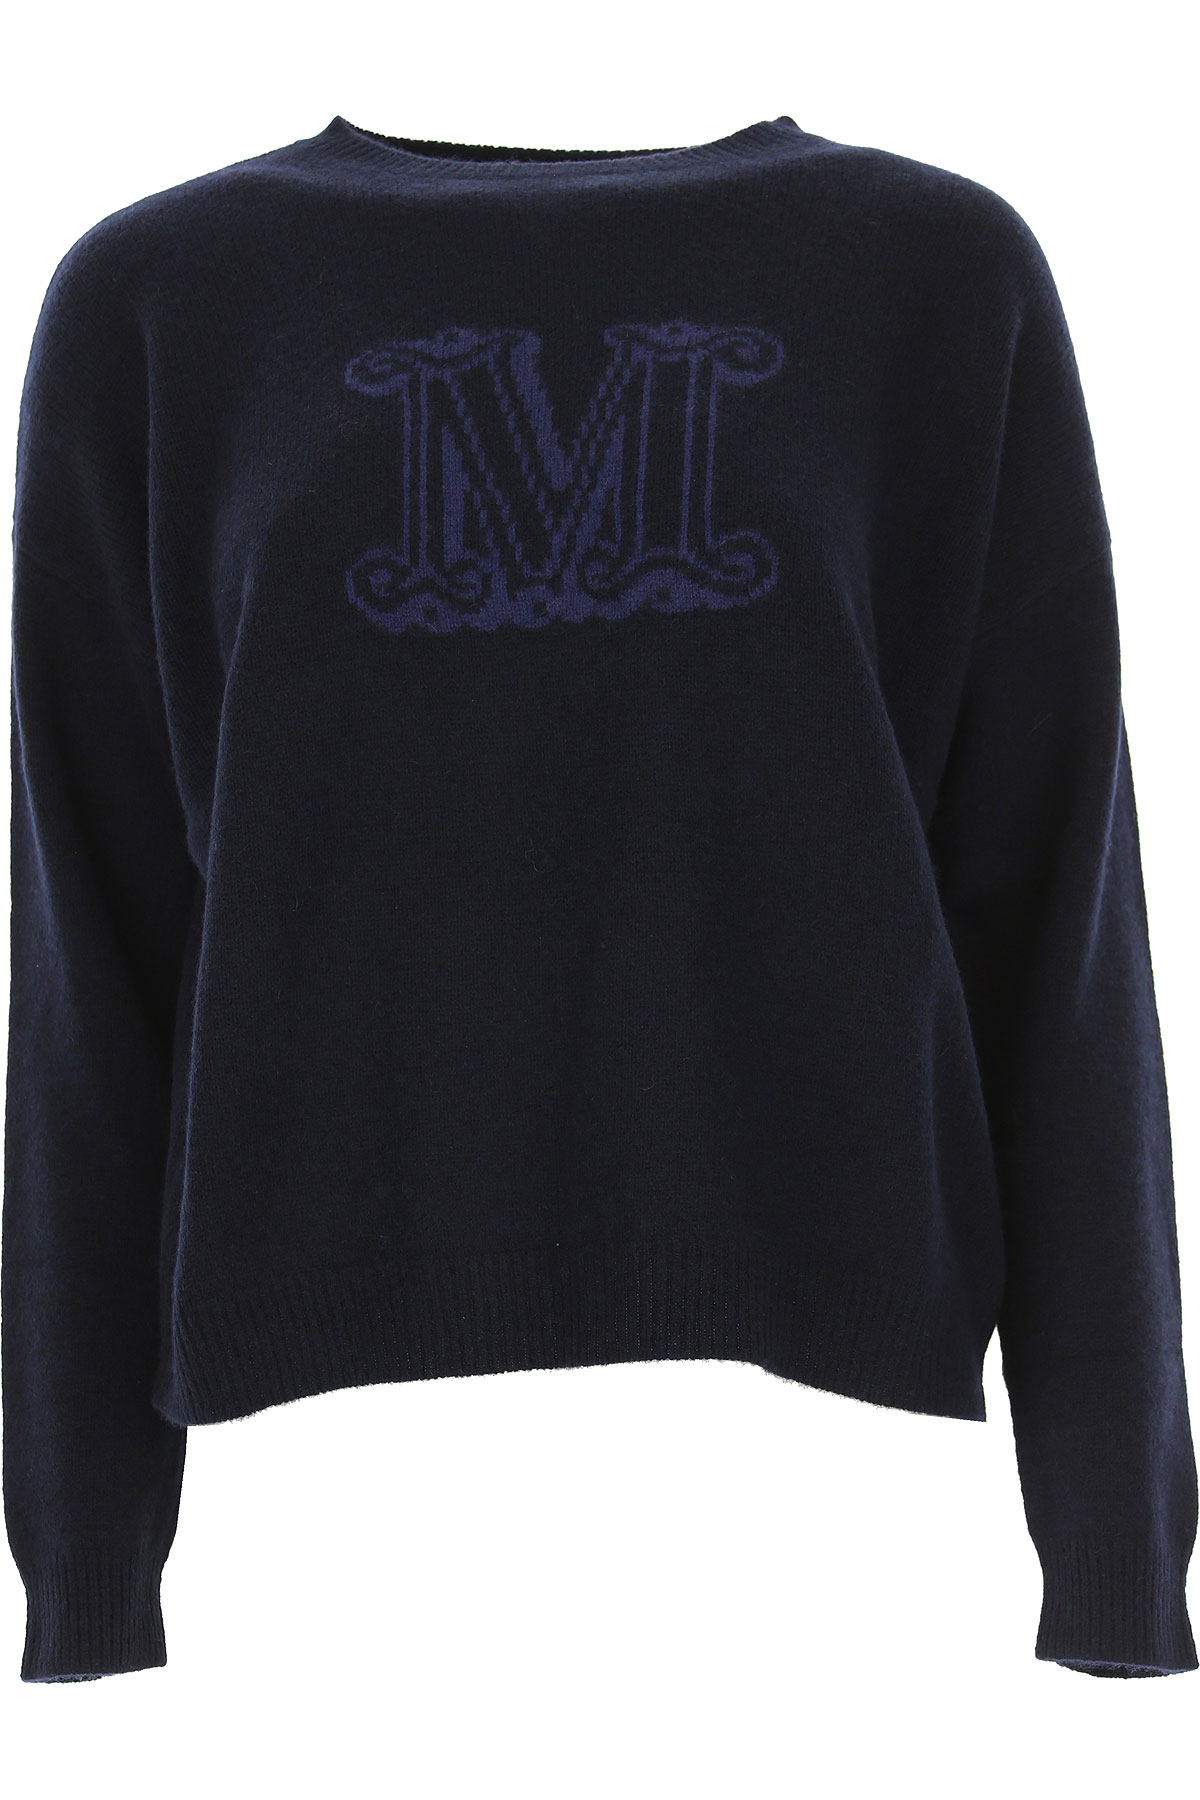 Image of Weekend by Max Mara Sweater for Women Jumper, Navy Blue, Wool, 2017, 2 4 6 8